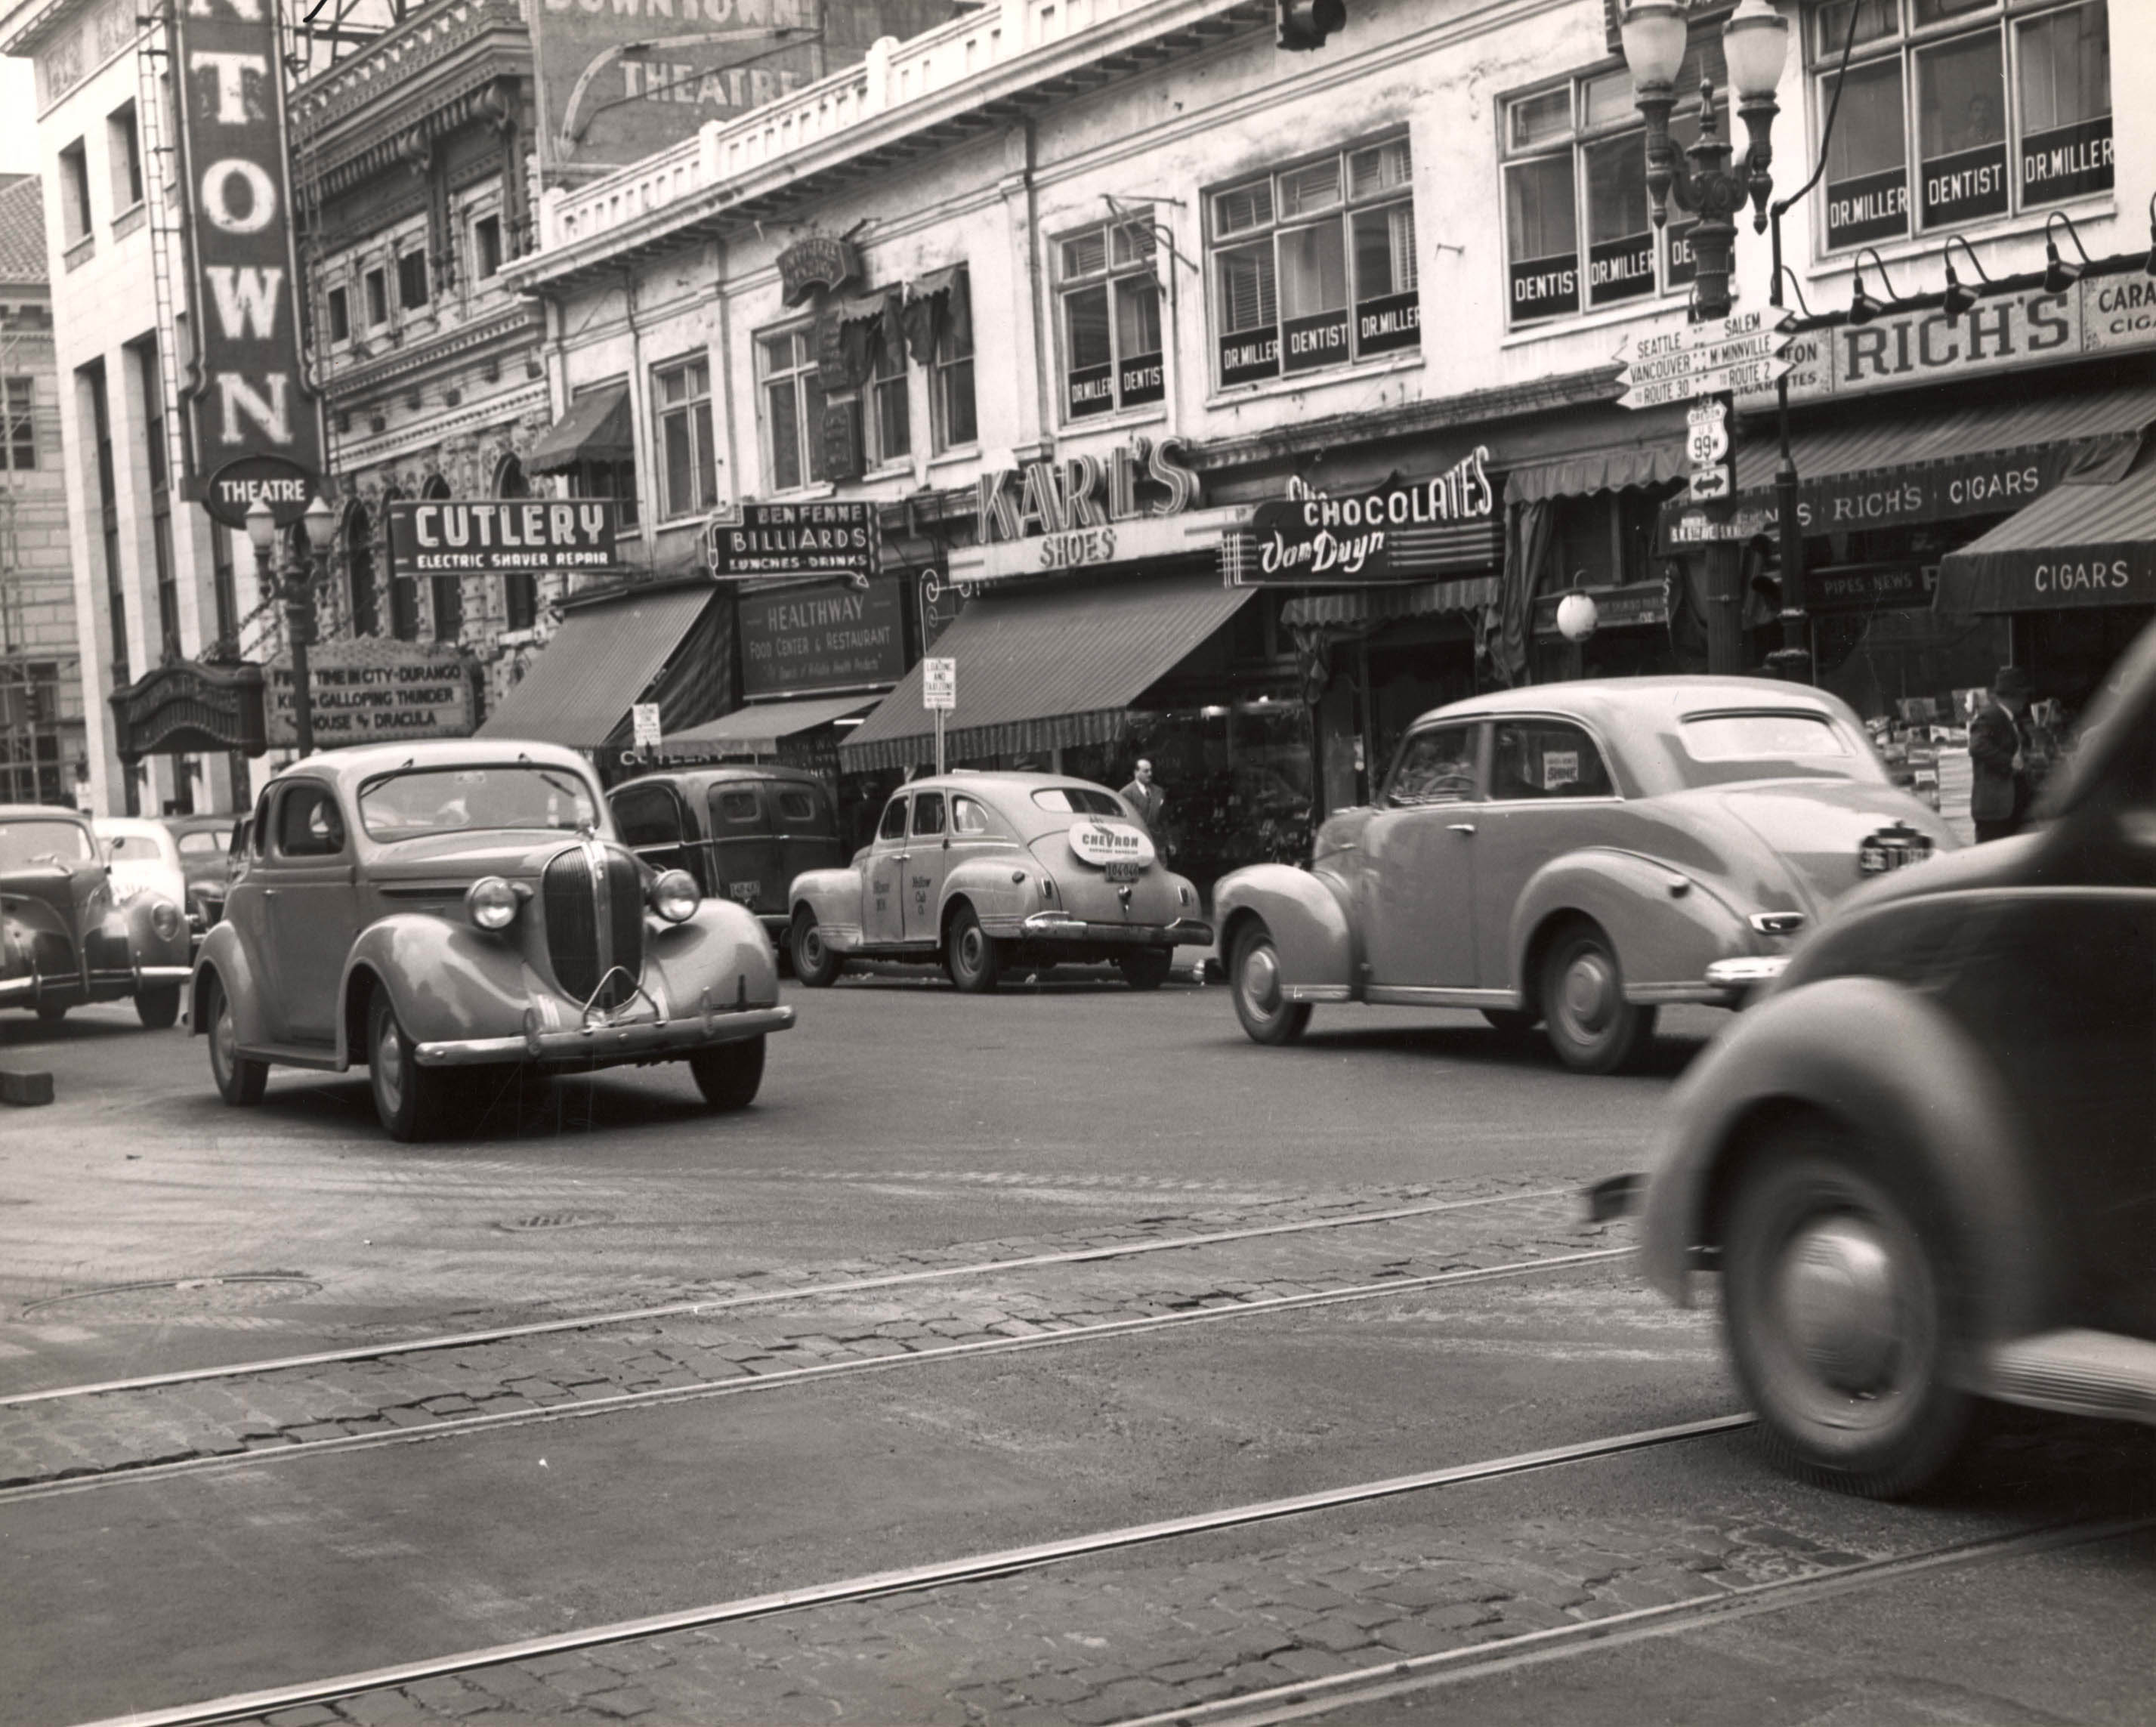 SW 6th Ave & Washington, 1946